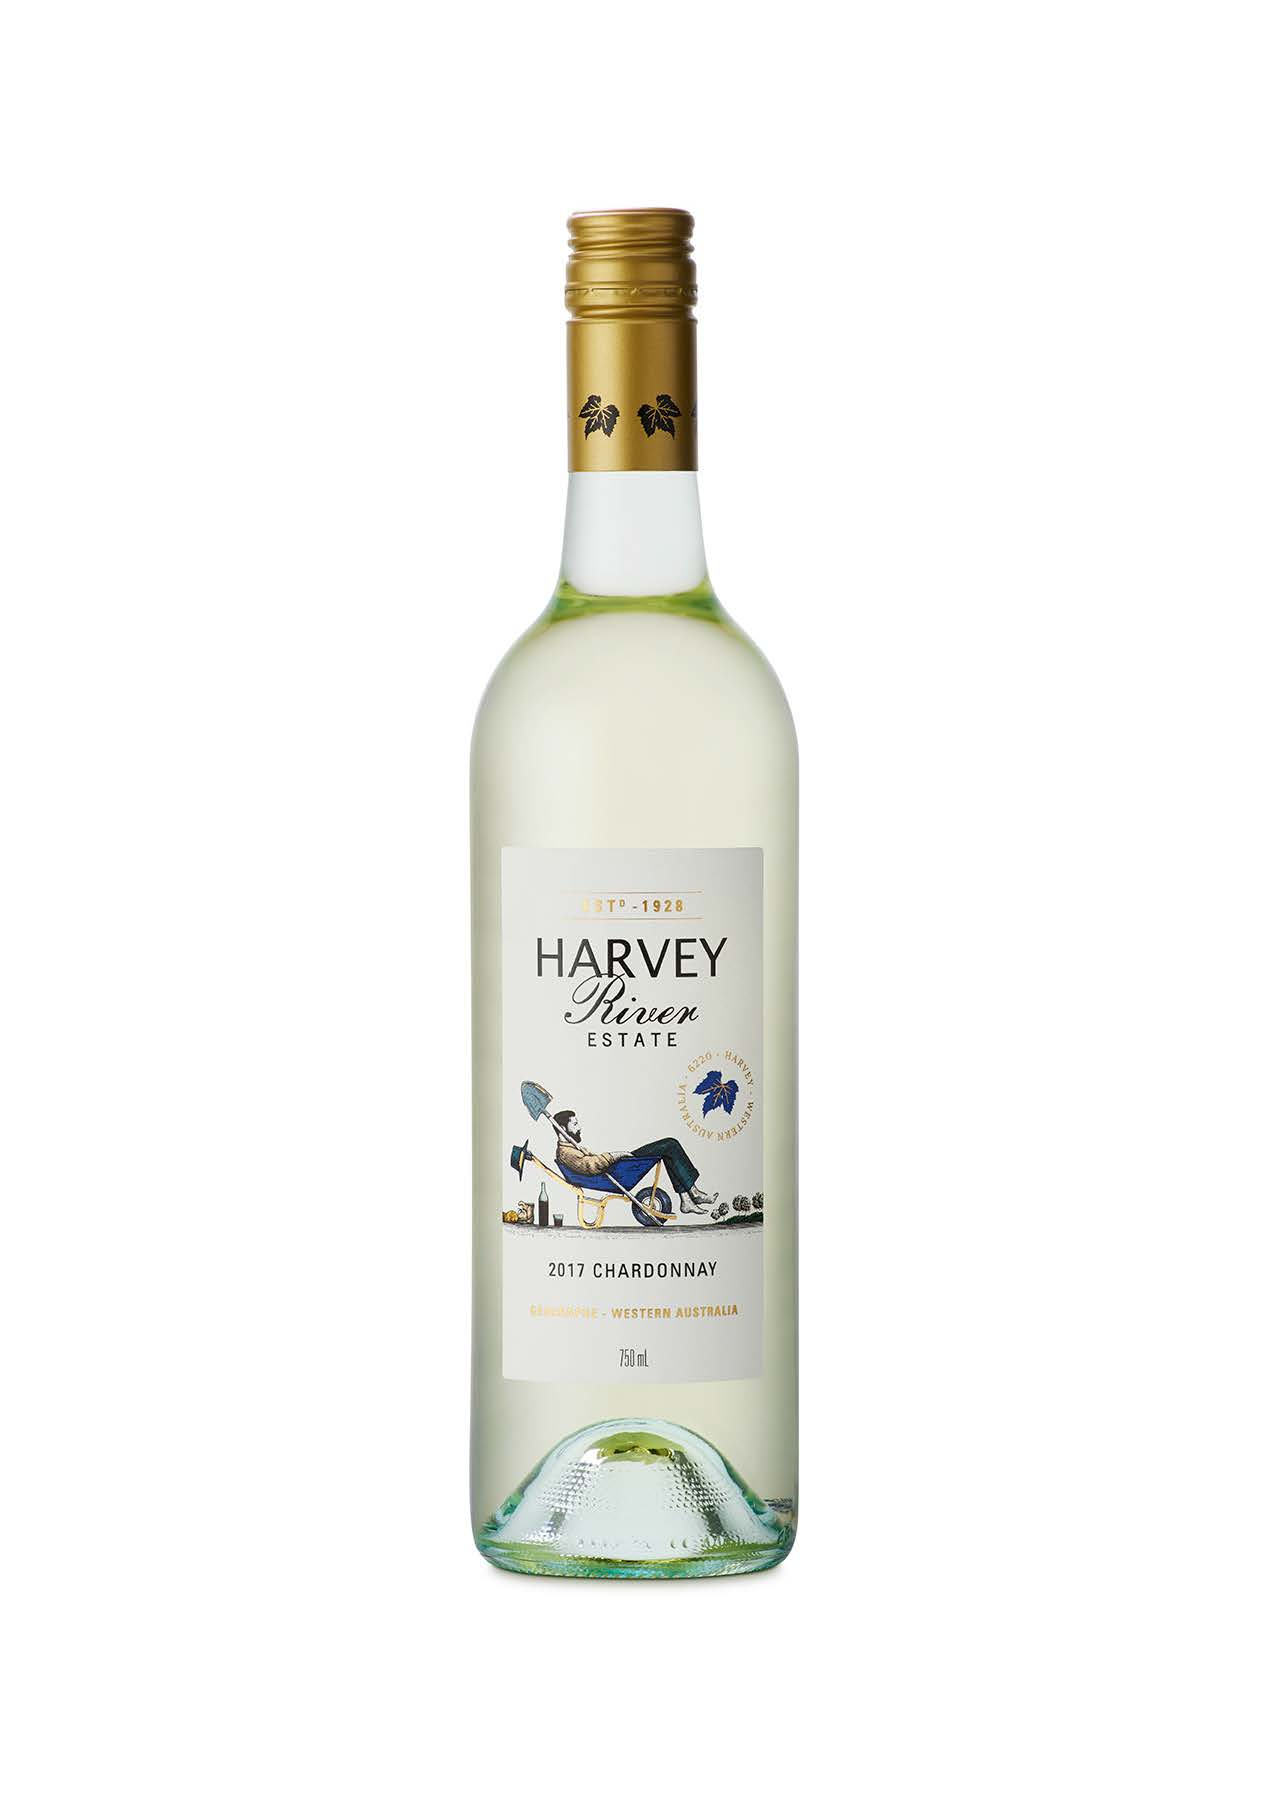 2017 Chardonnay | Harvey River Estate | Harvey River Wine